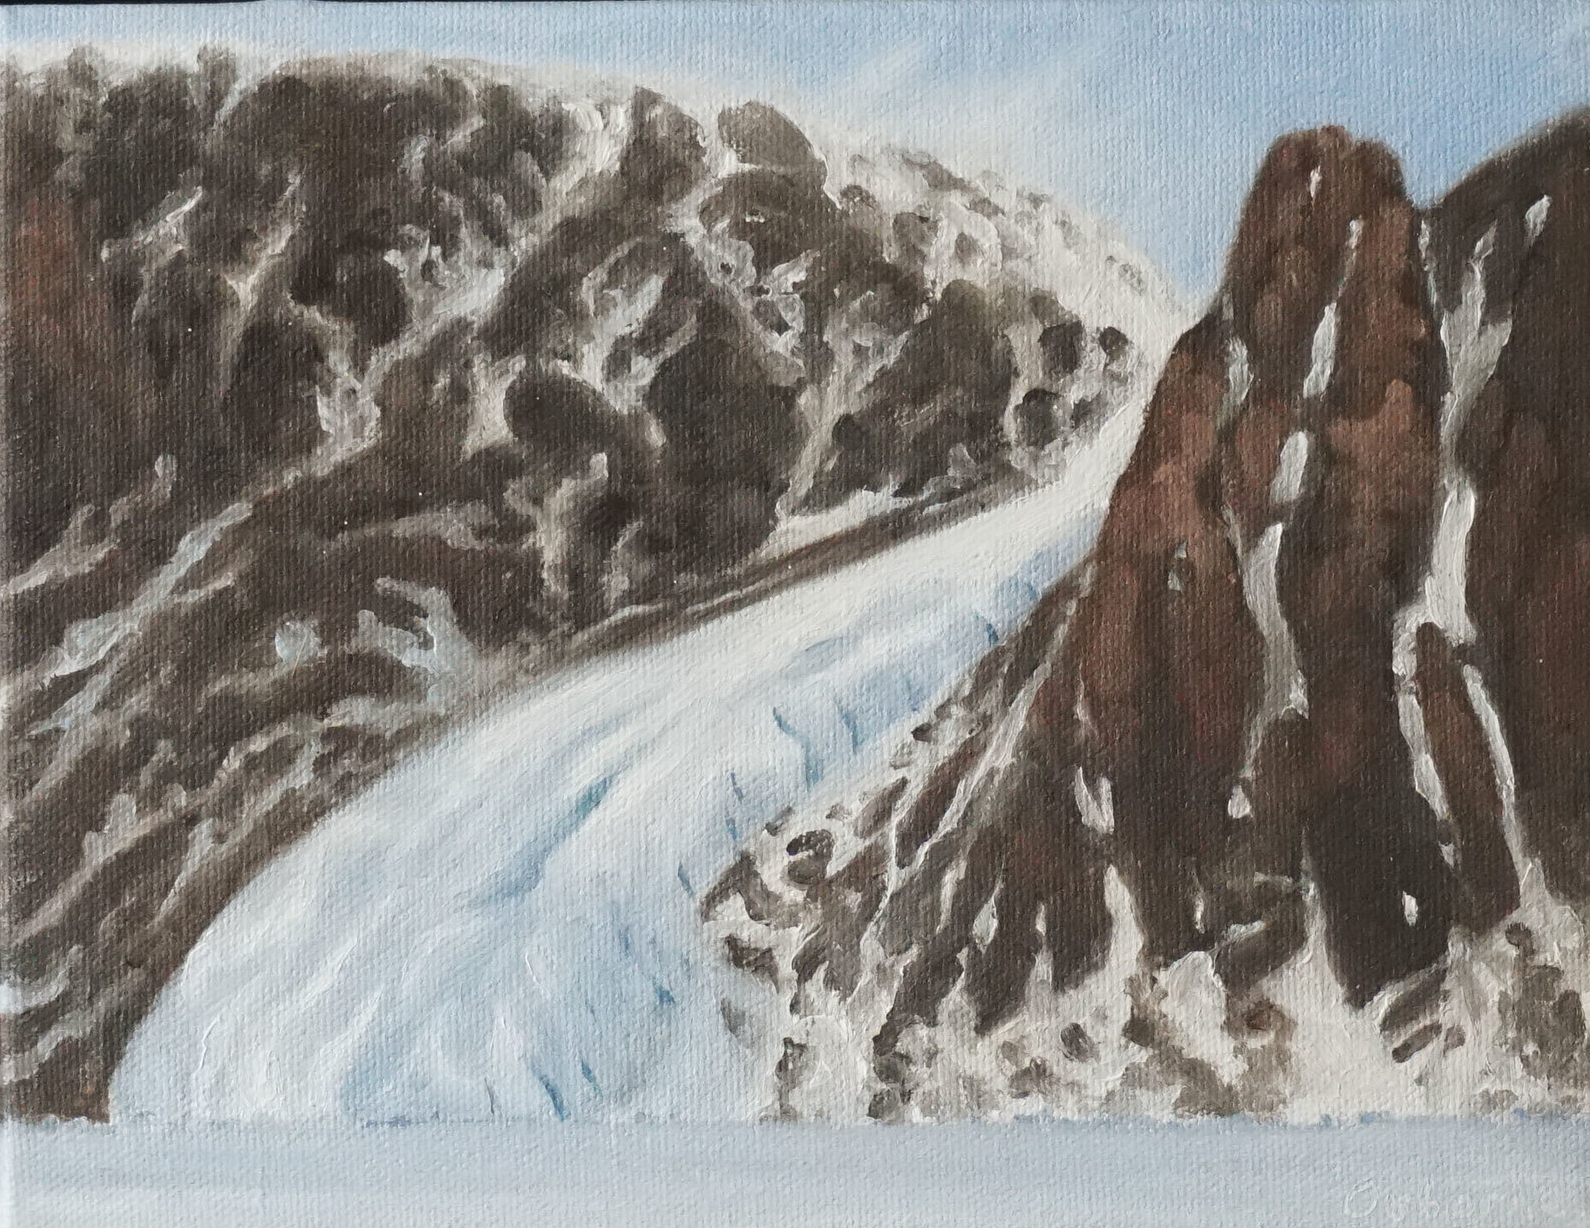 Glacier Camp , 15cm x 25cm, oil on canvas, 2005.